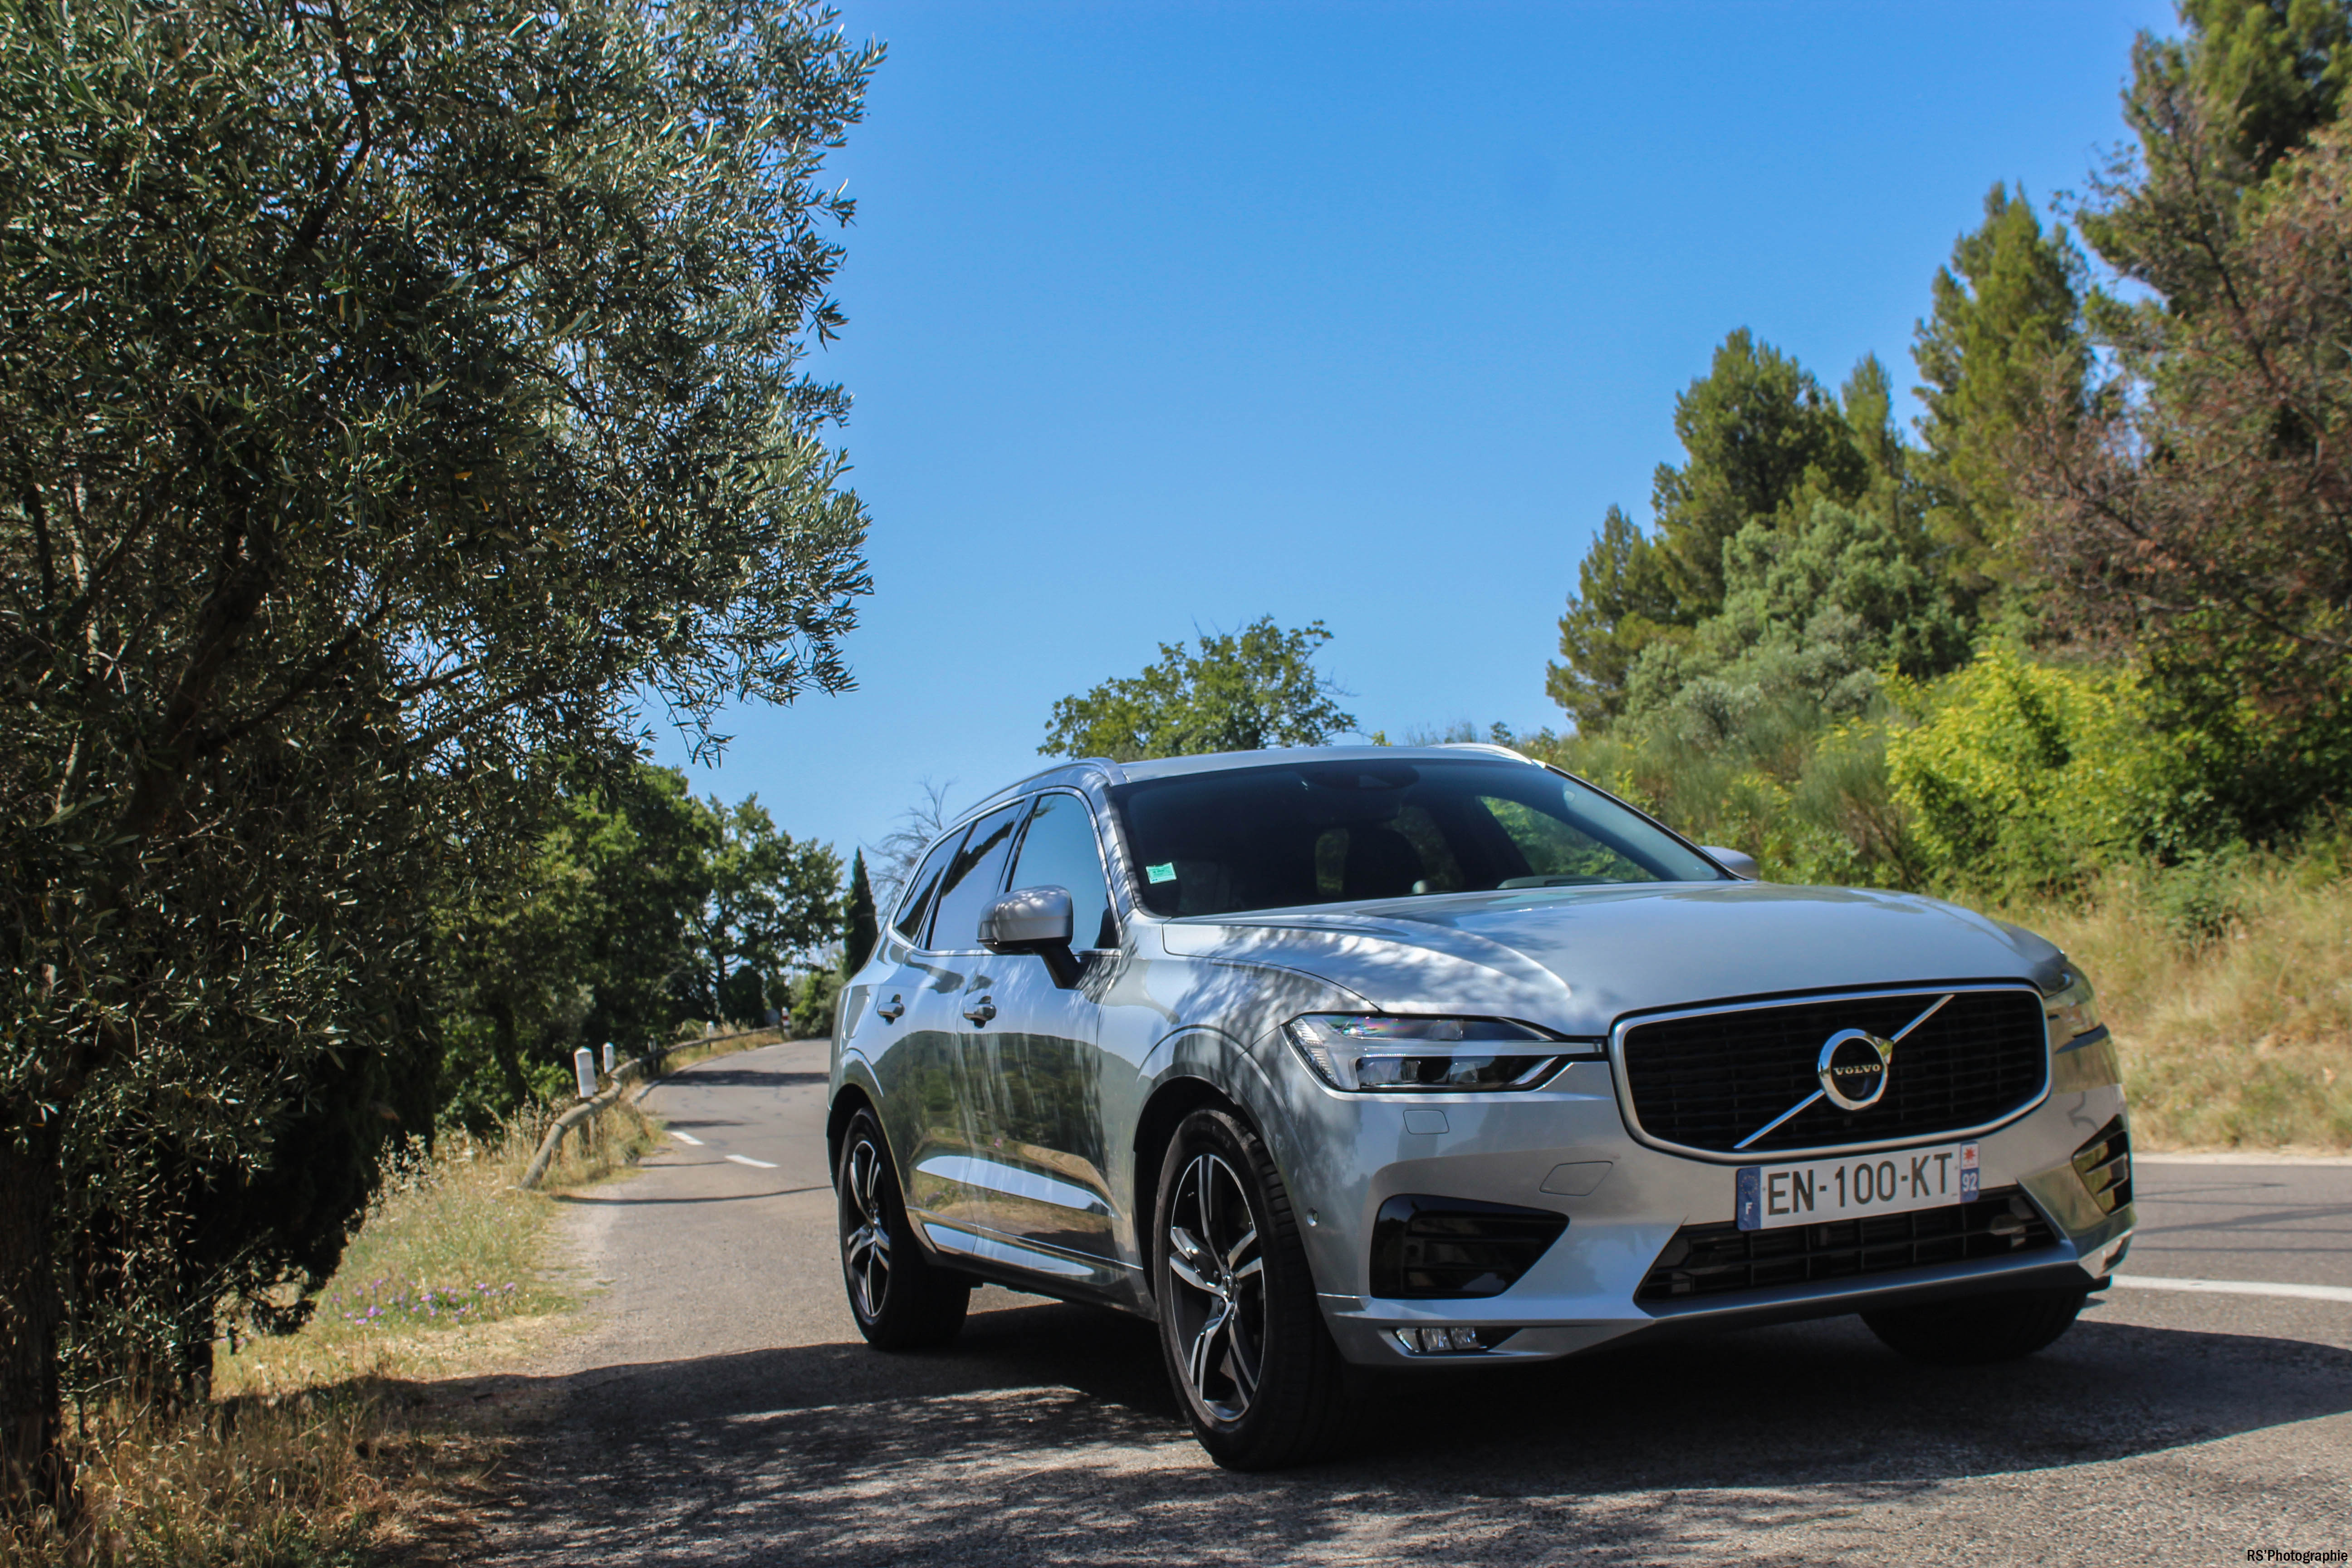 OpéVolvo4-volvo-xc60-avant-front-Arnaud Demasier-RSPhotographie